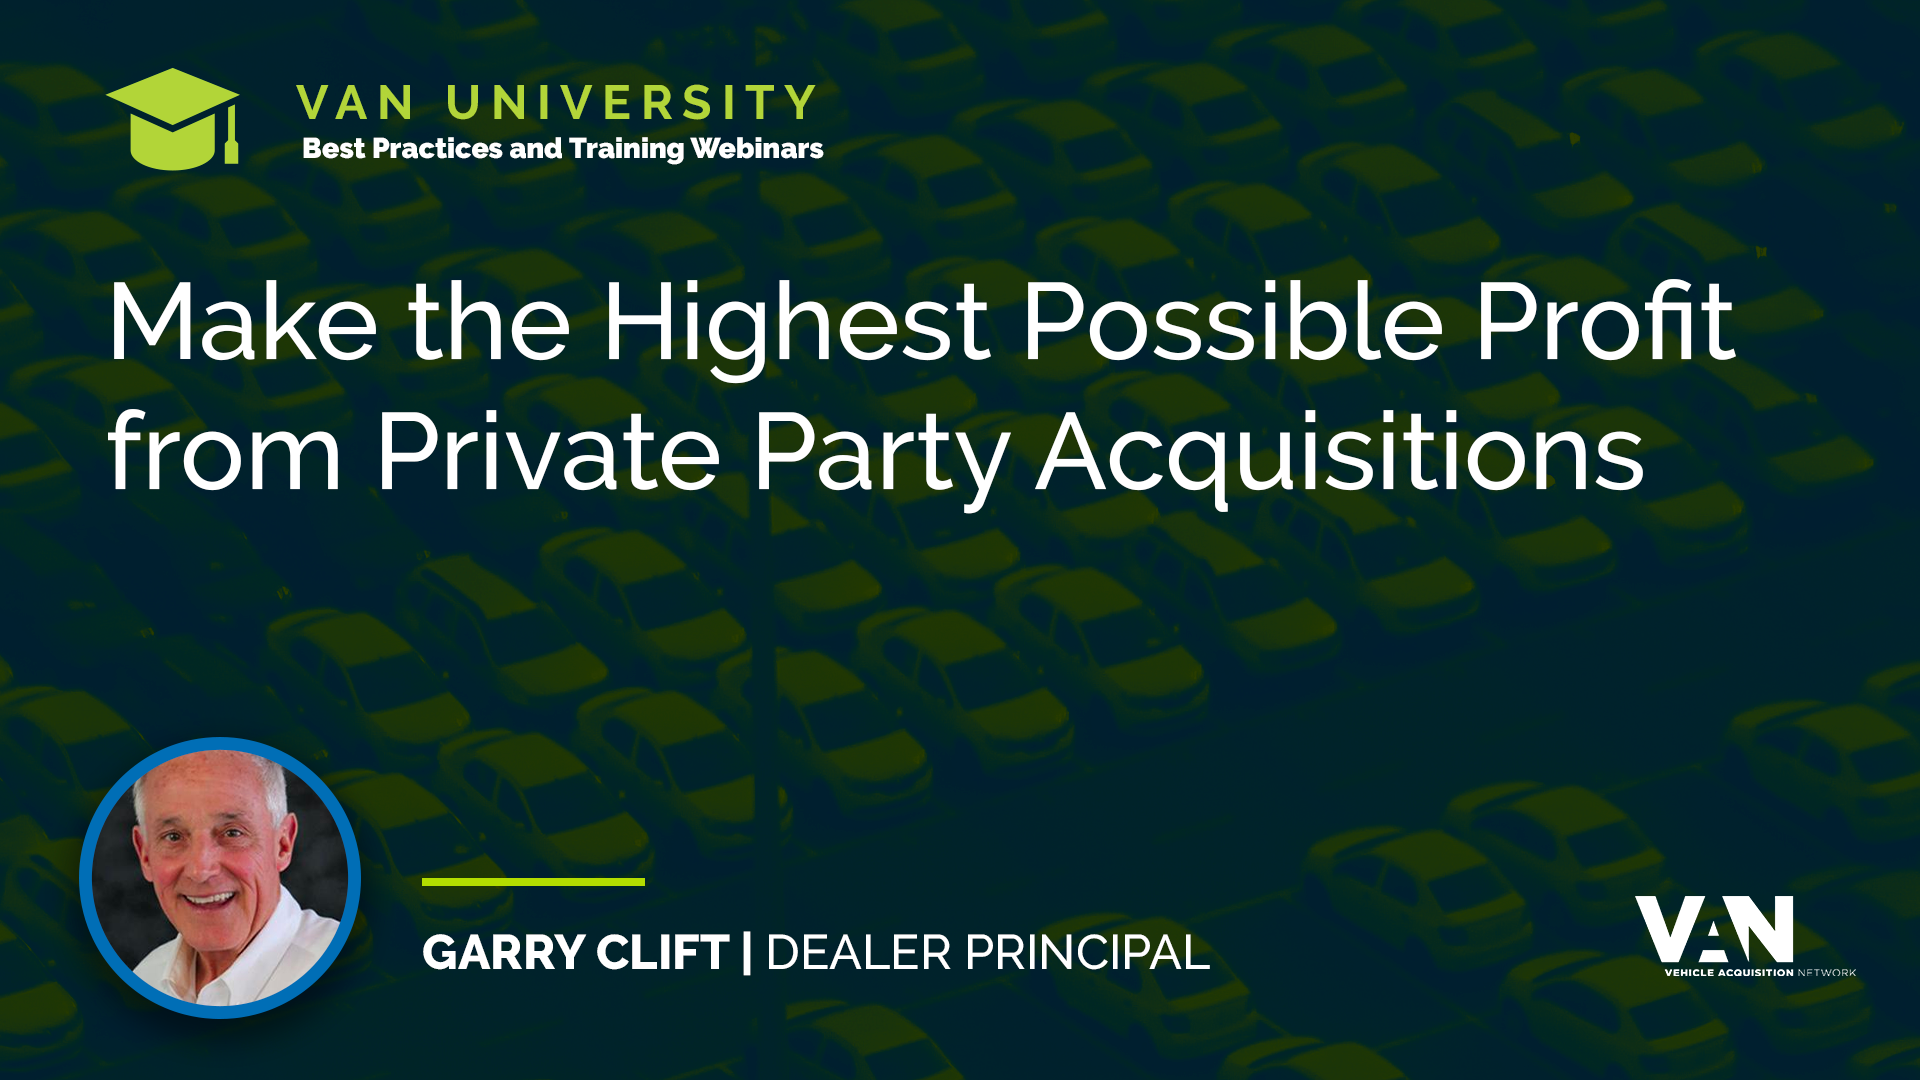 Garry Clift on making the highest possible profit